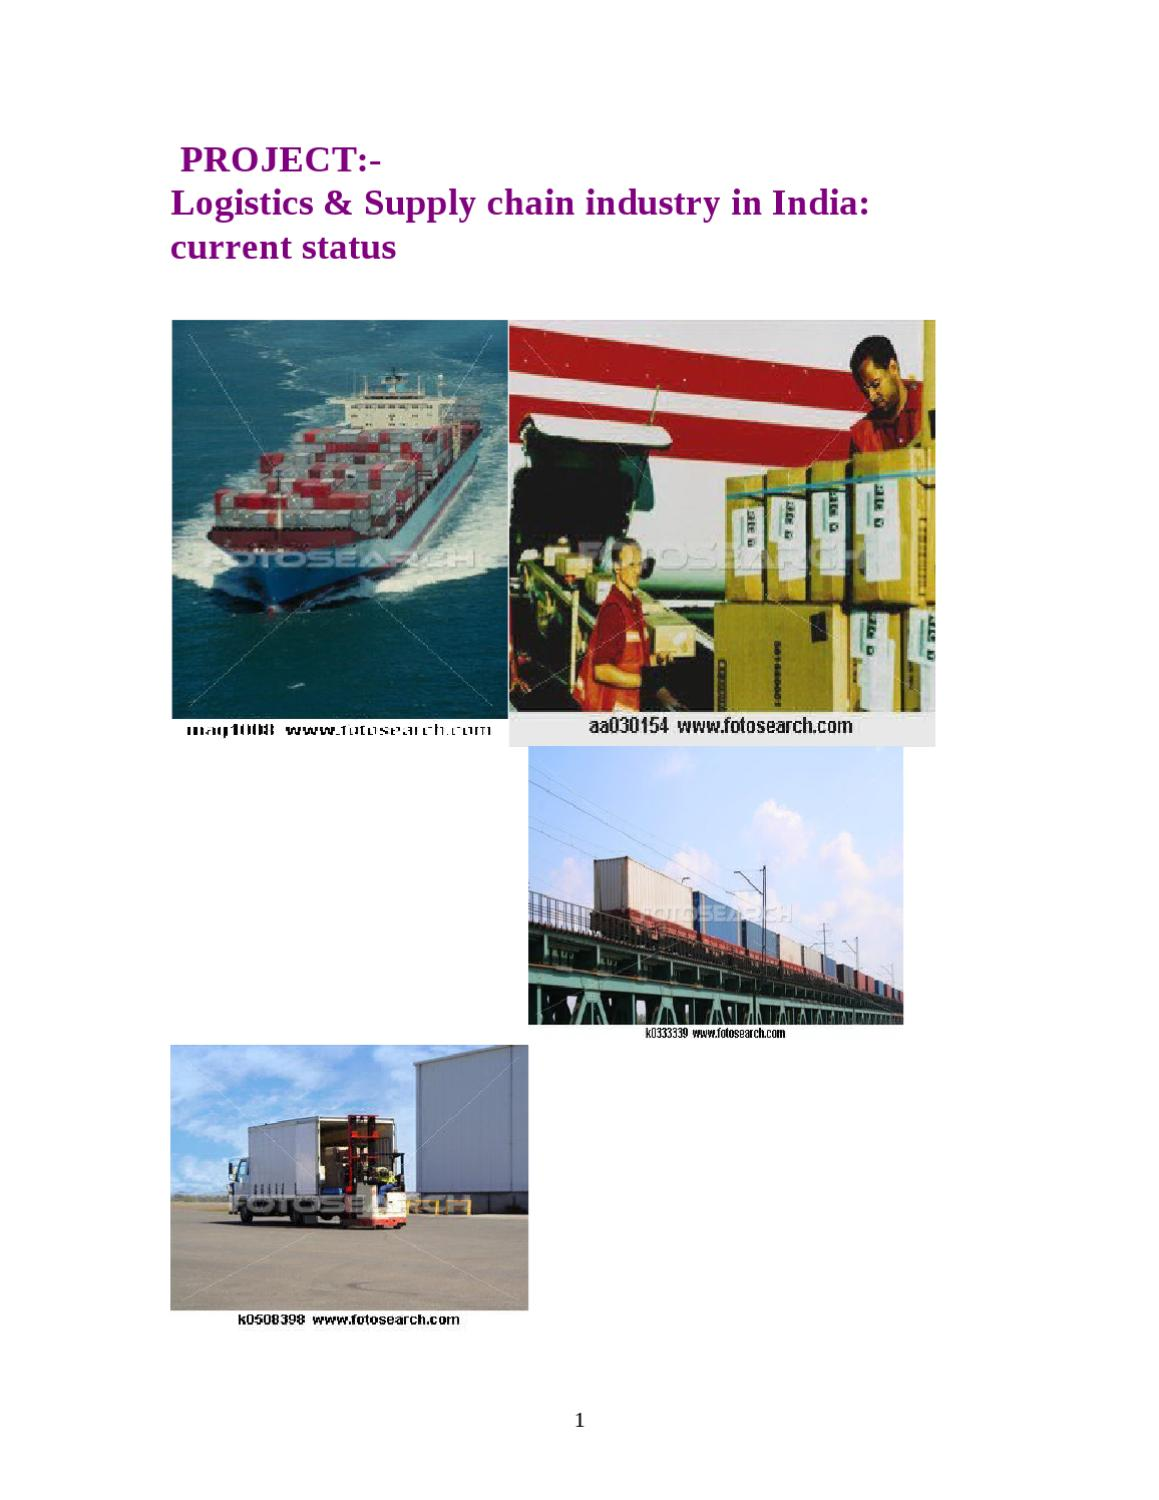 Logistics business plan in india